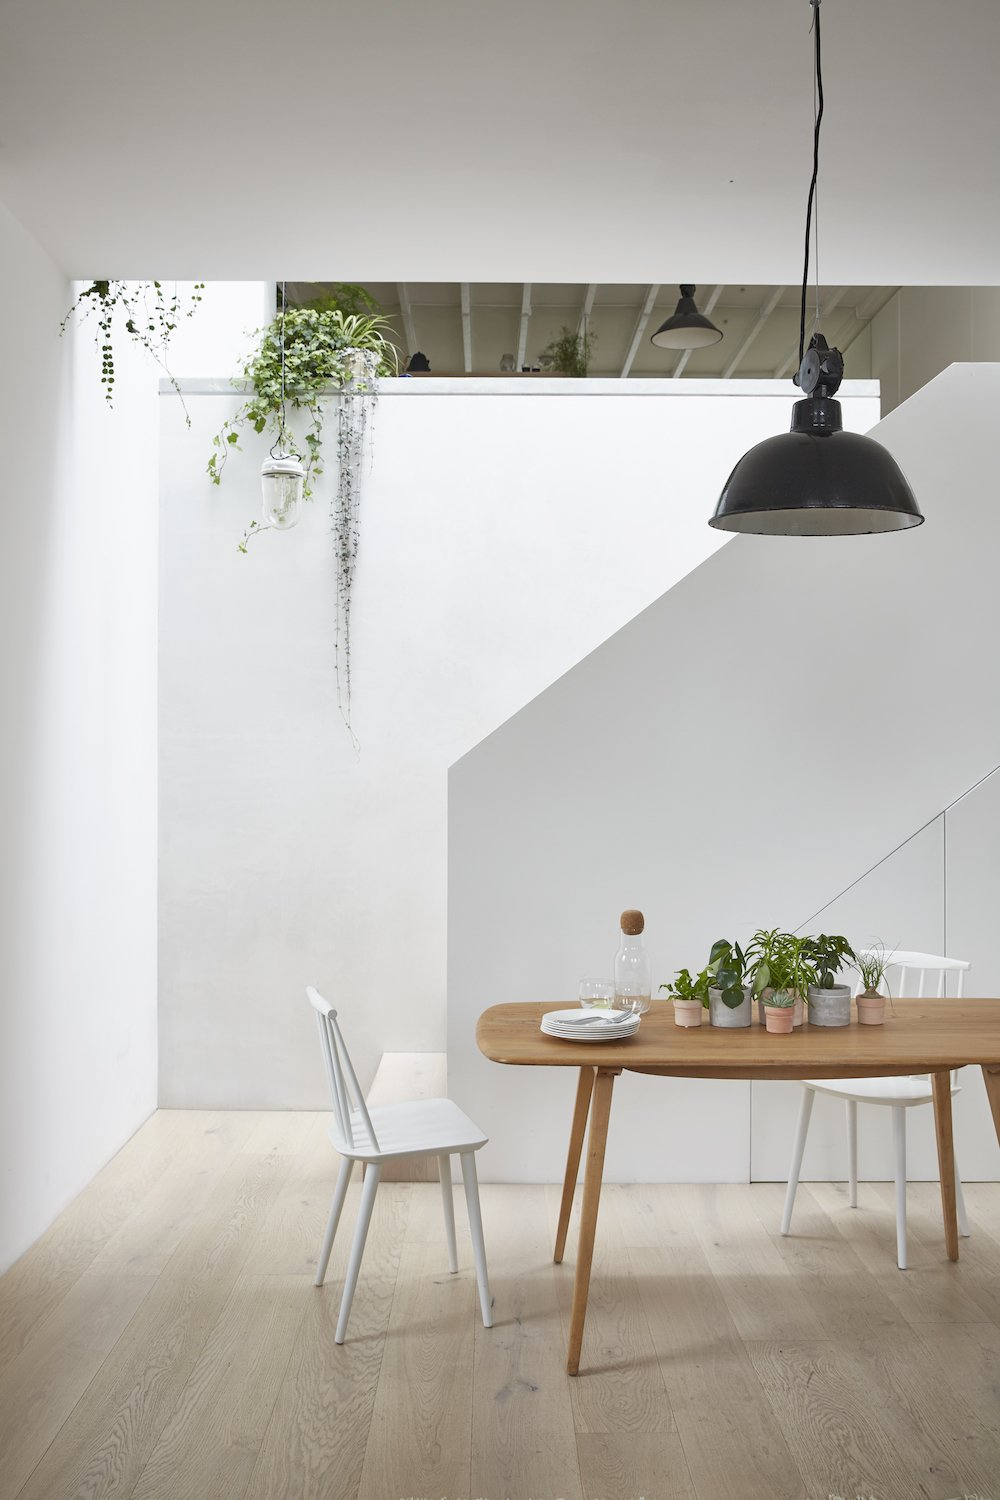 A new staircase and roof light, brings natural light into the dining area, overlooked by the kitchen above